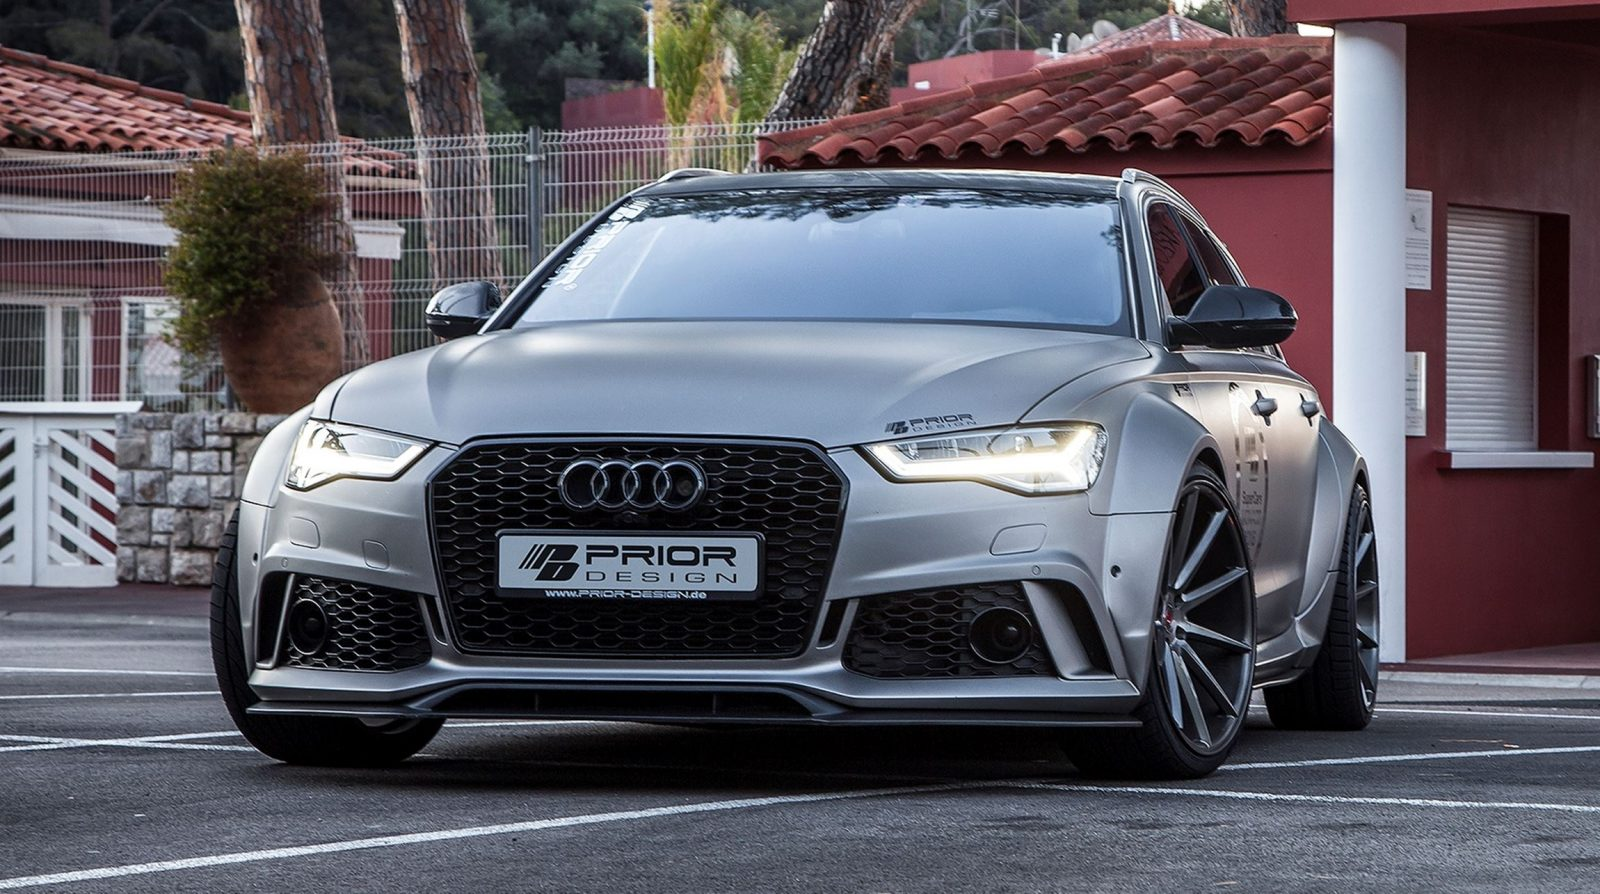 Audi A6/S6/RS6 Widebody! PRIOR-DESIGN PD600R Is Hot New